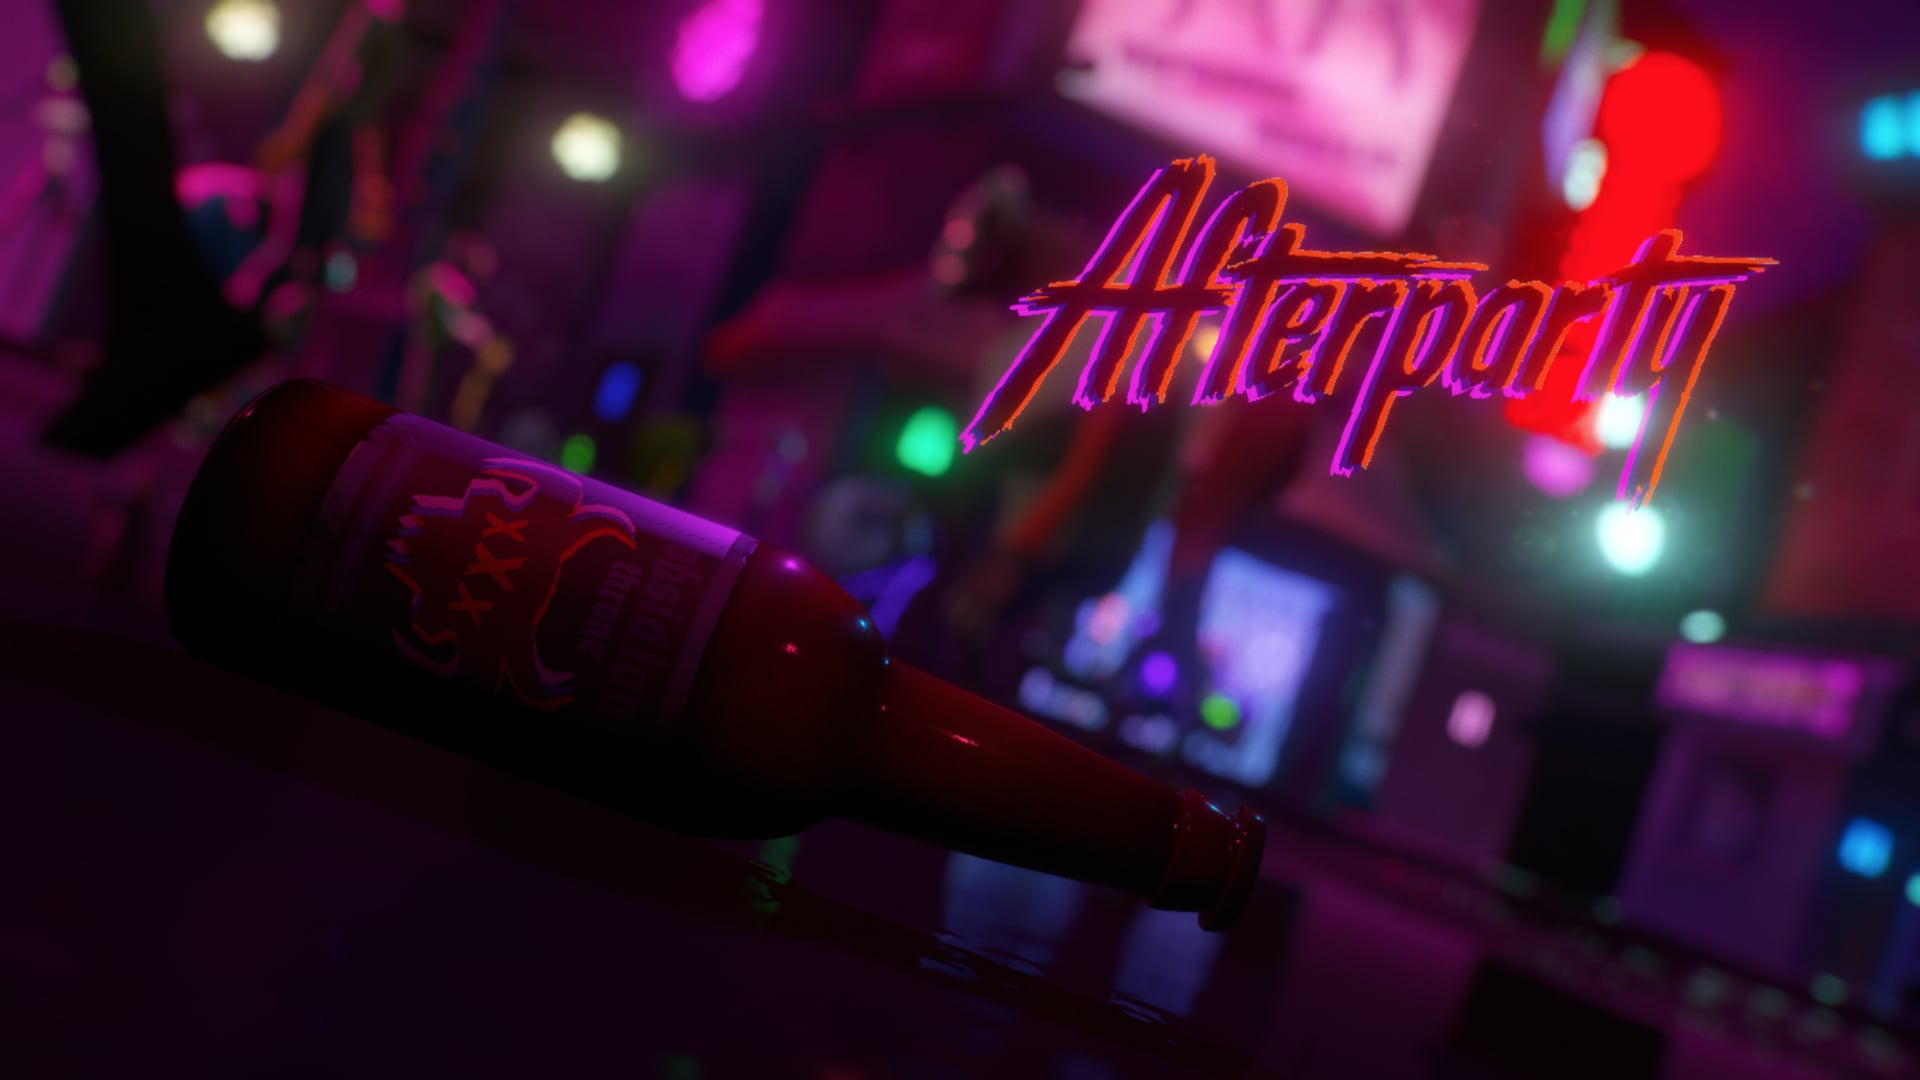 The title screen of Afterparty, depicting Hell with a close up shot of of a bottle of alcohol.